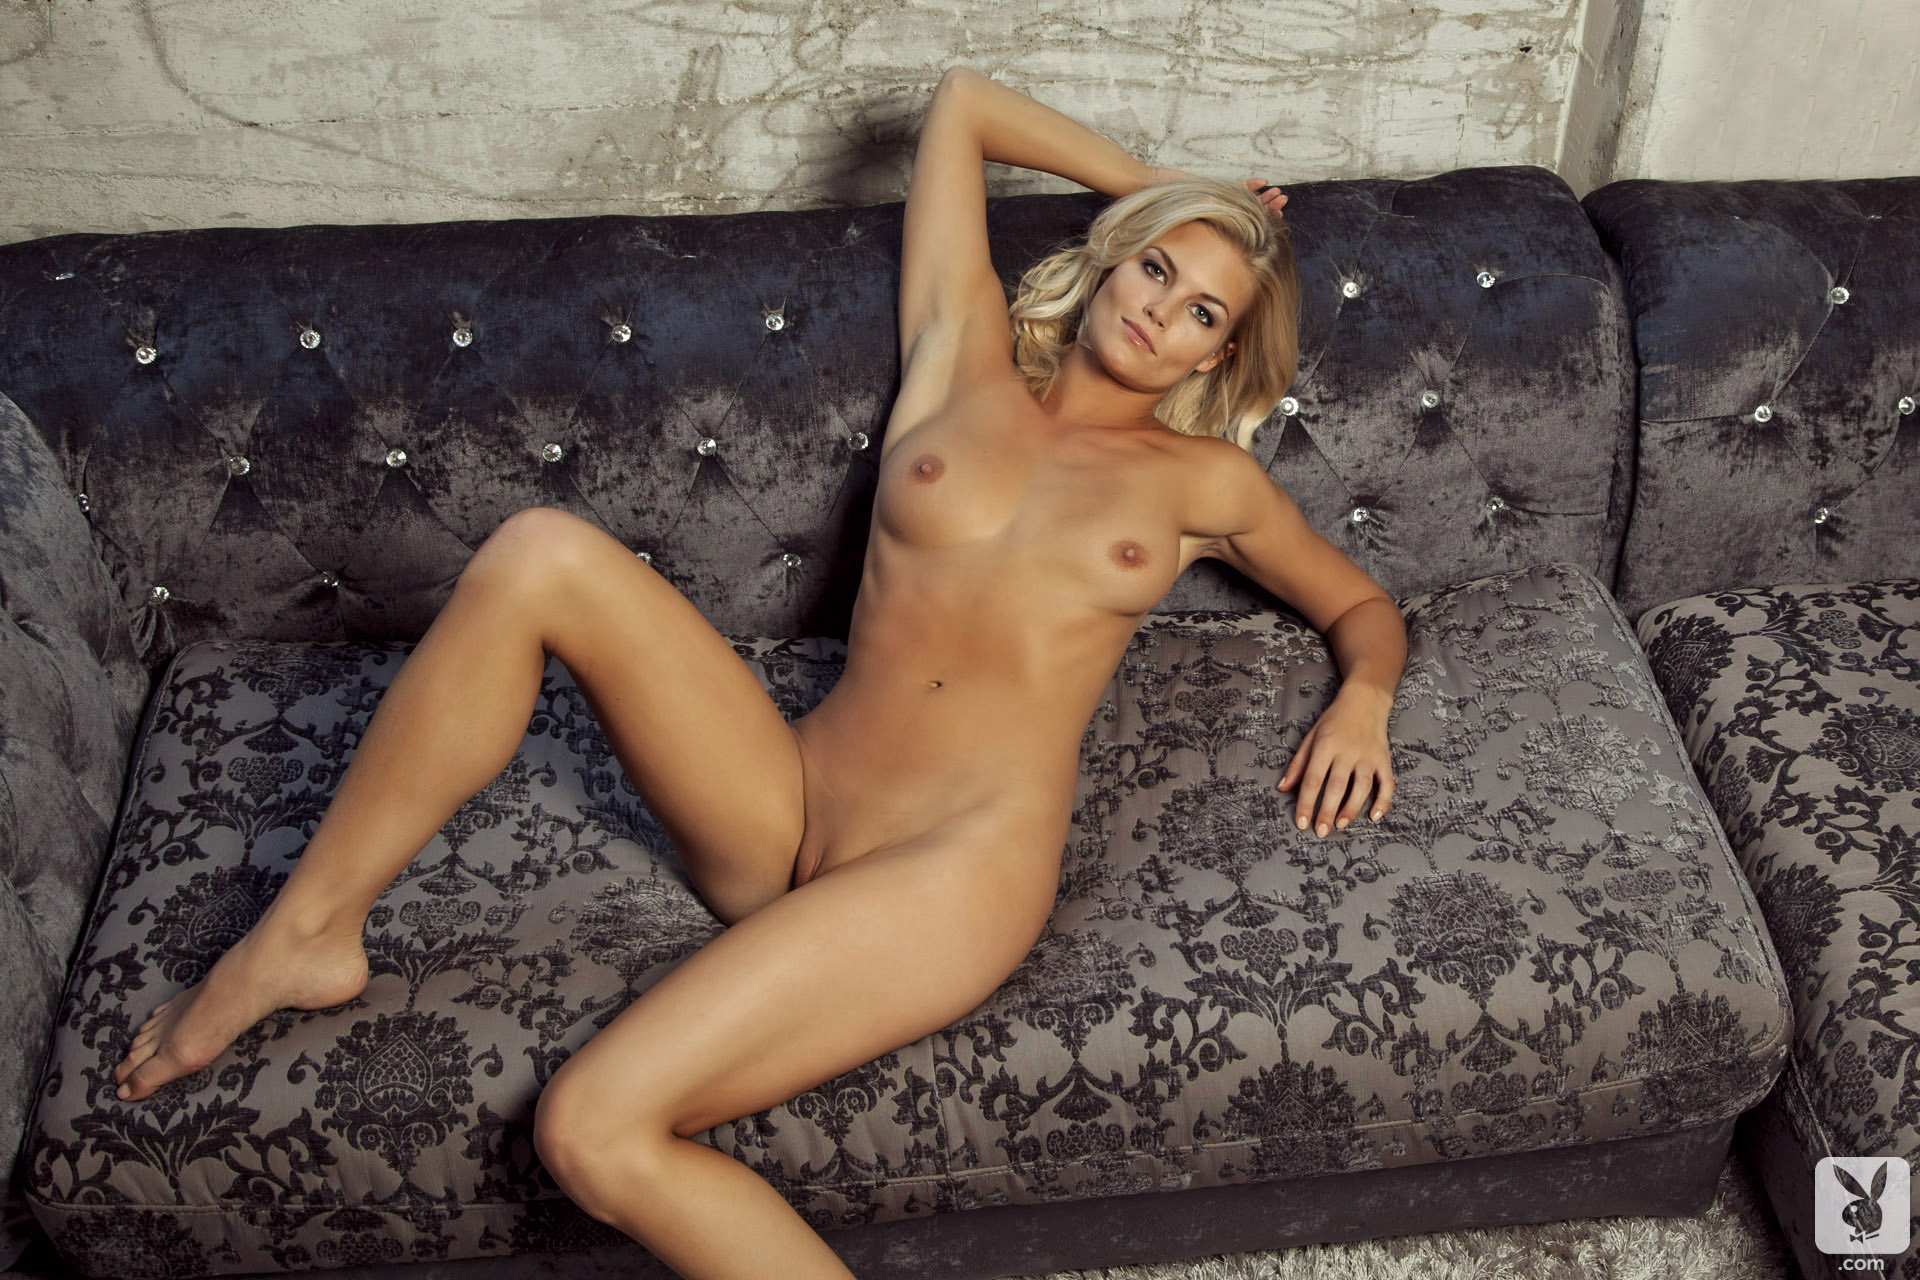 Hunter McCloud - Nude On The Couch | MOTHERLESS.COM ™